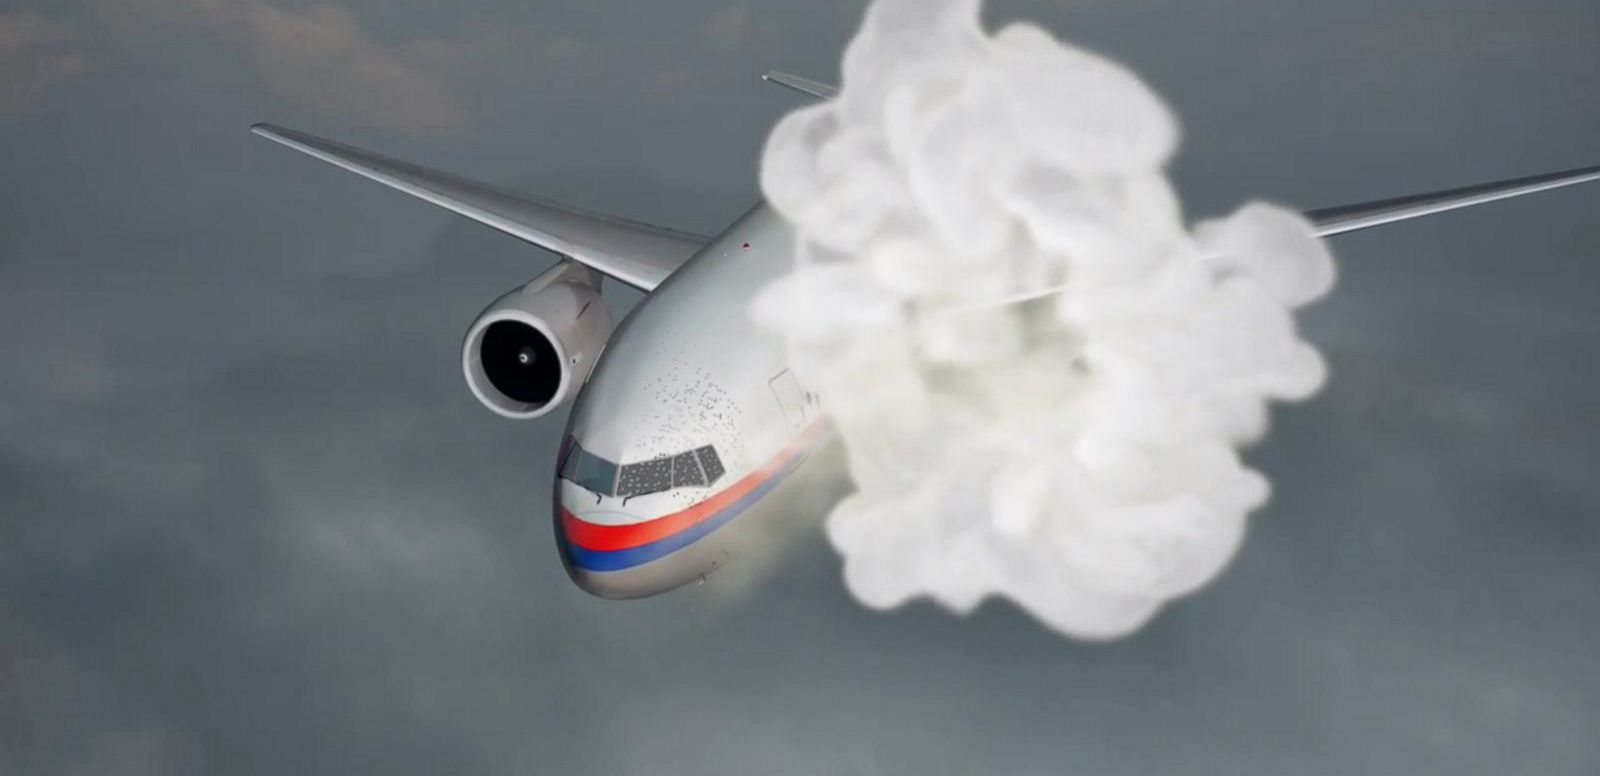 VIDEO: This animation released by the Dutch Safety Board details how a Buk missile brought MH-17 down over pro-Russian Eastern Ukraine, killing all 298 onboard.